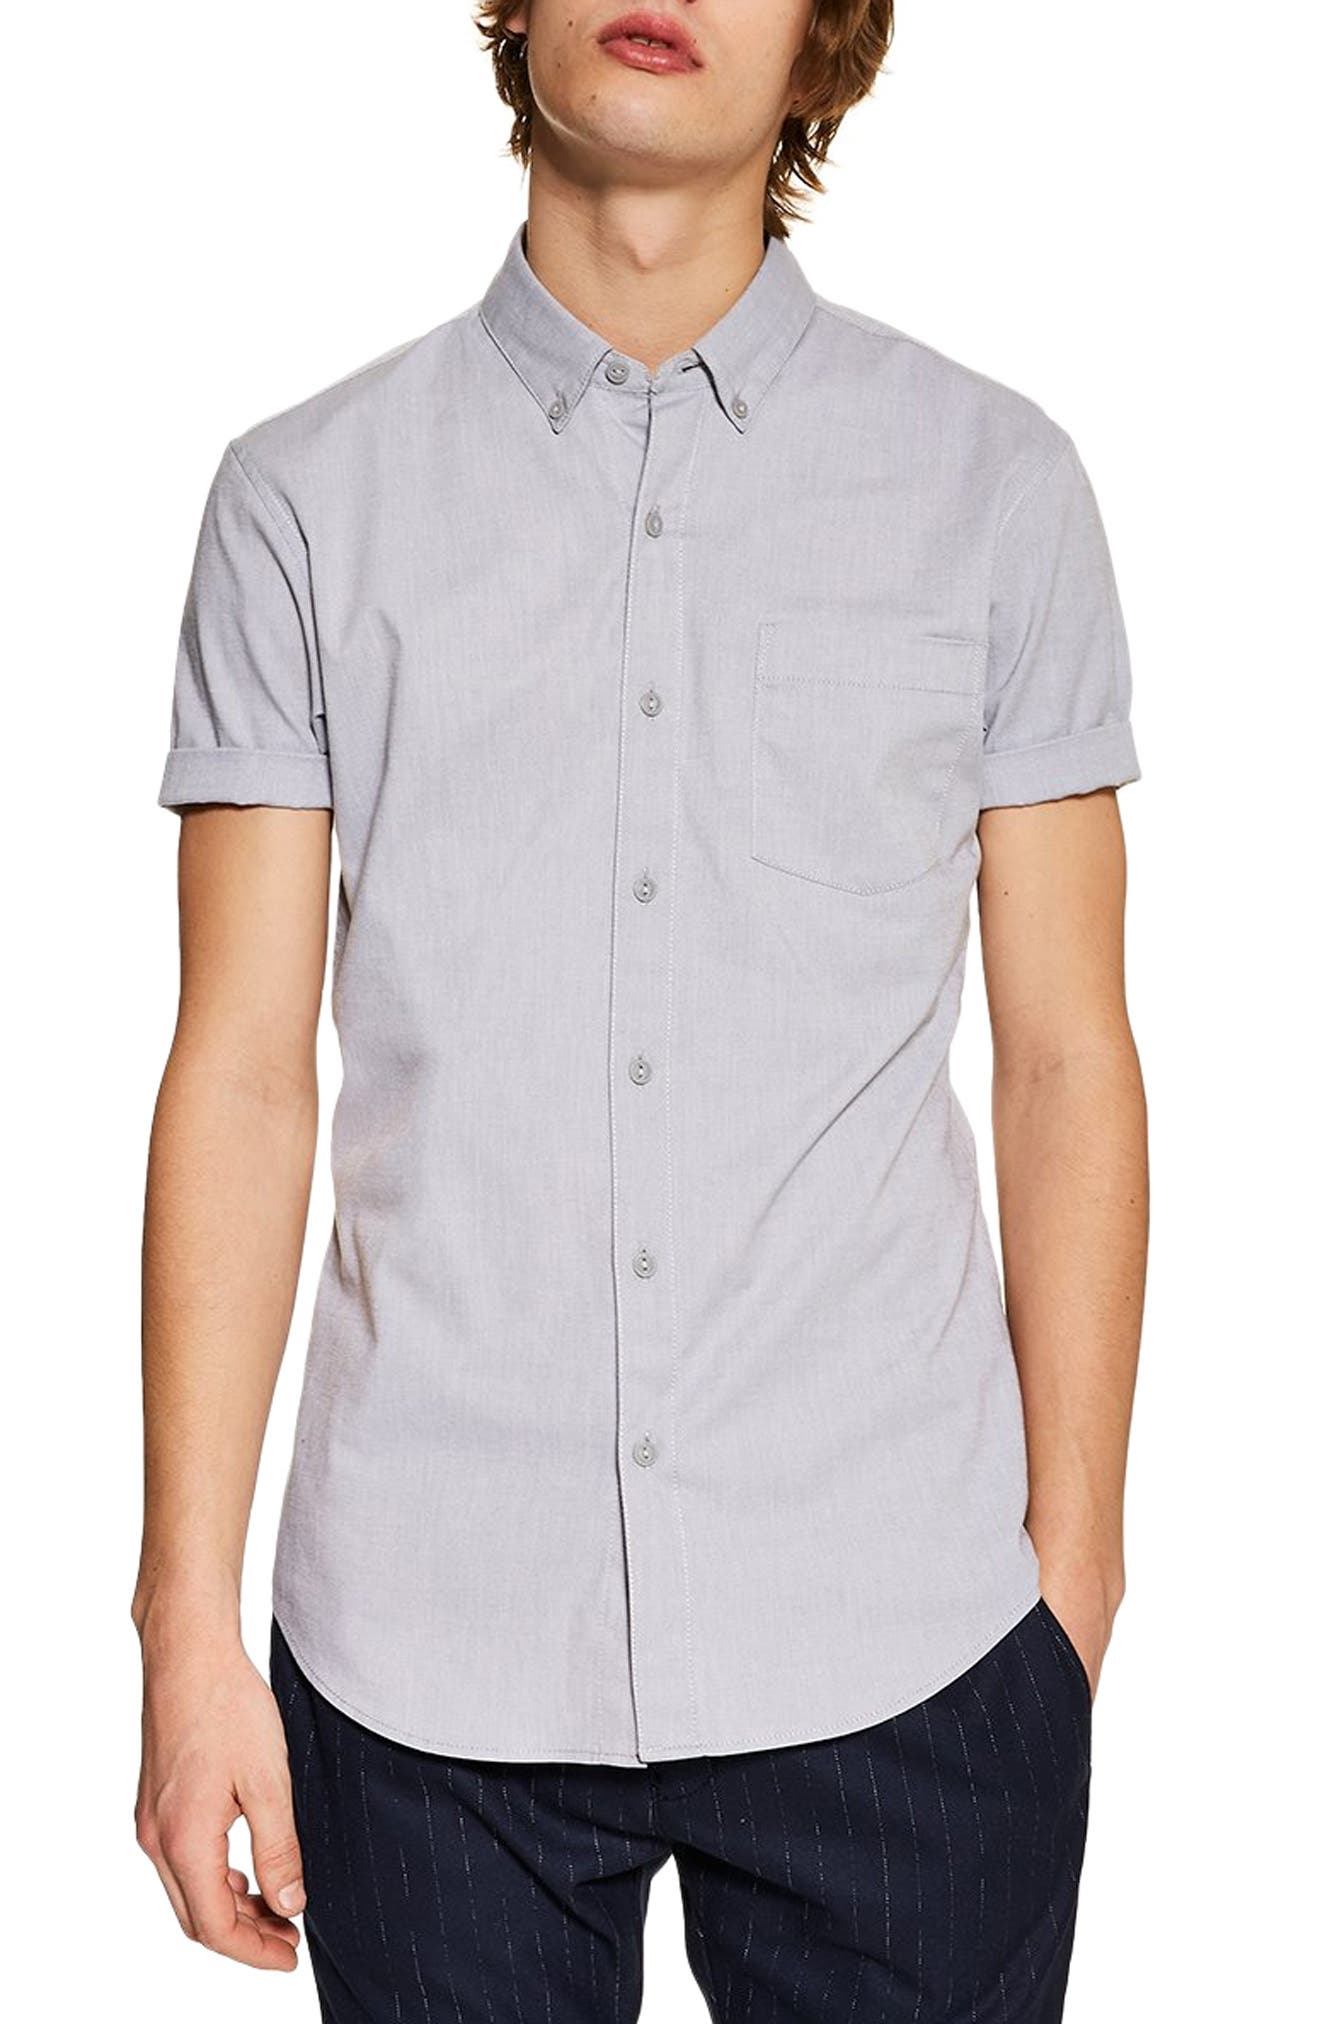 TOPMAN, Muscle Fit Oxford Shirt, Main thumbnail 1, color, GREY